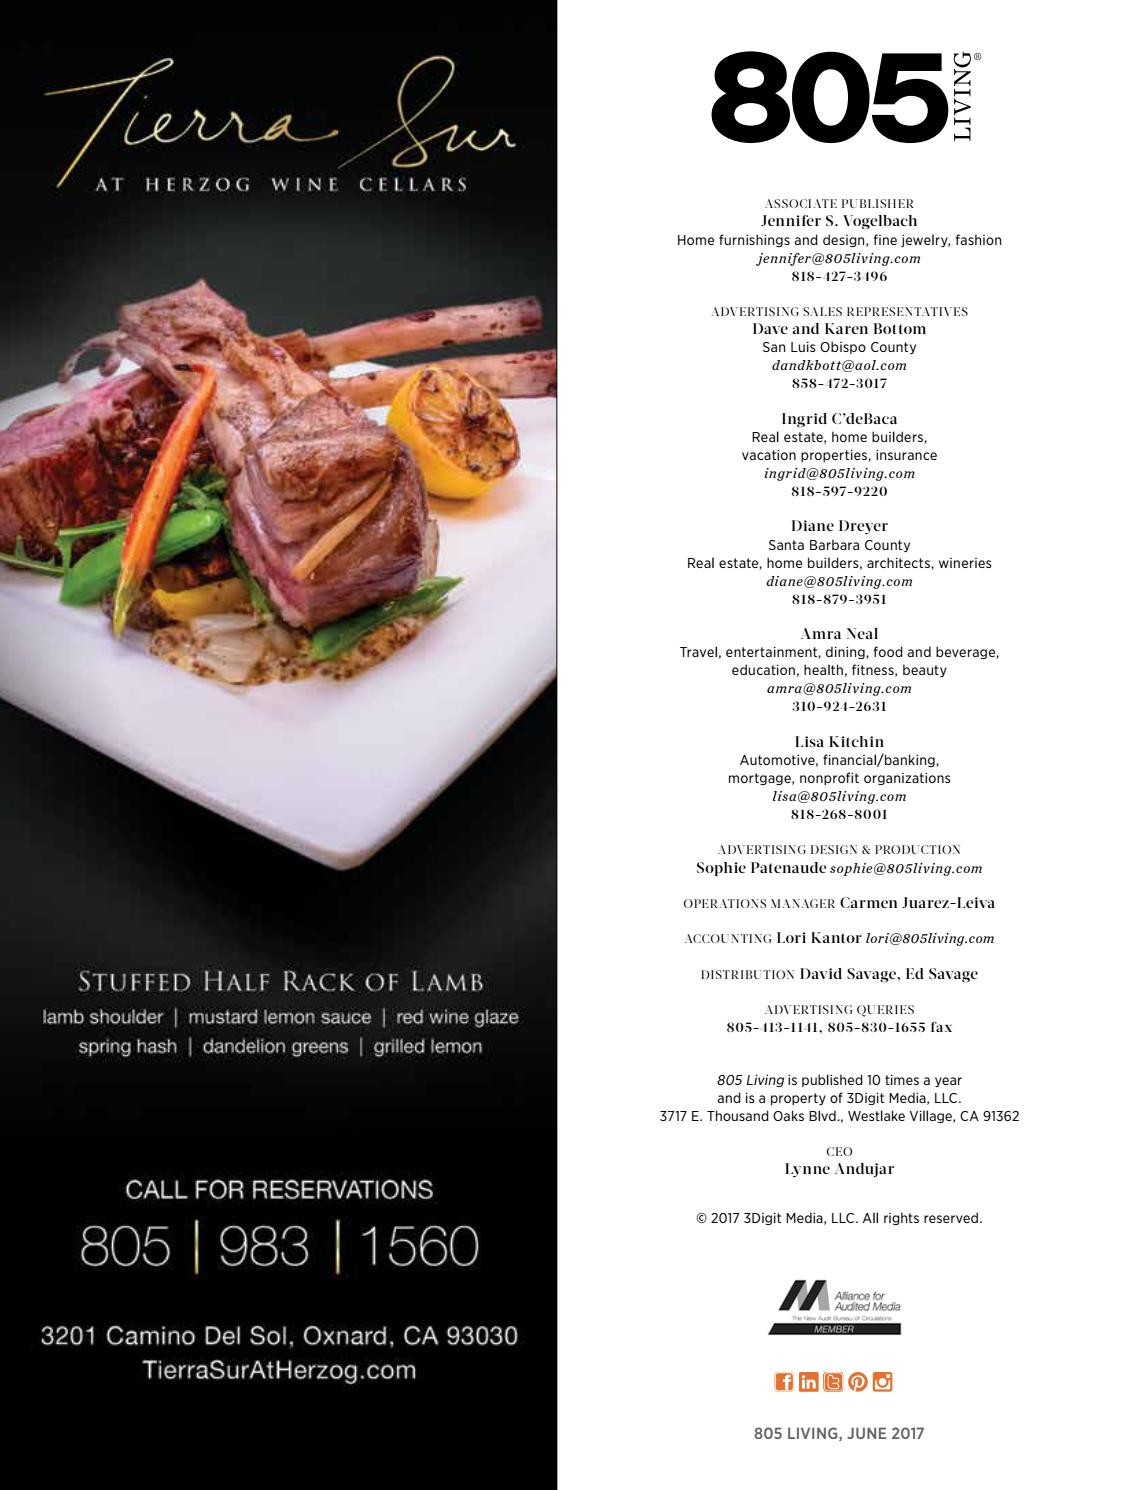 Camino Real Menu Nutritional Information 805 Living June 2017